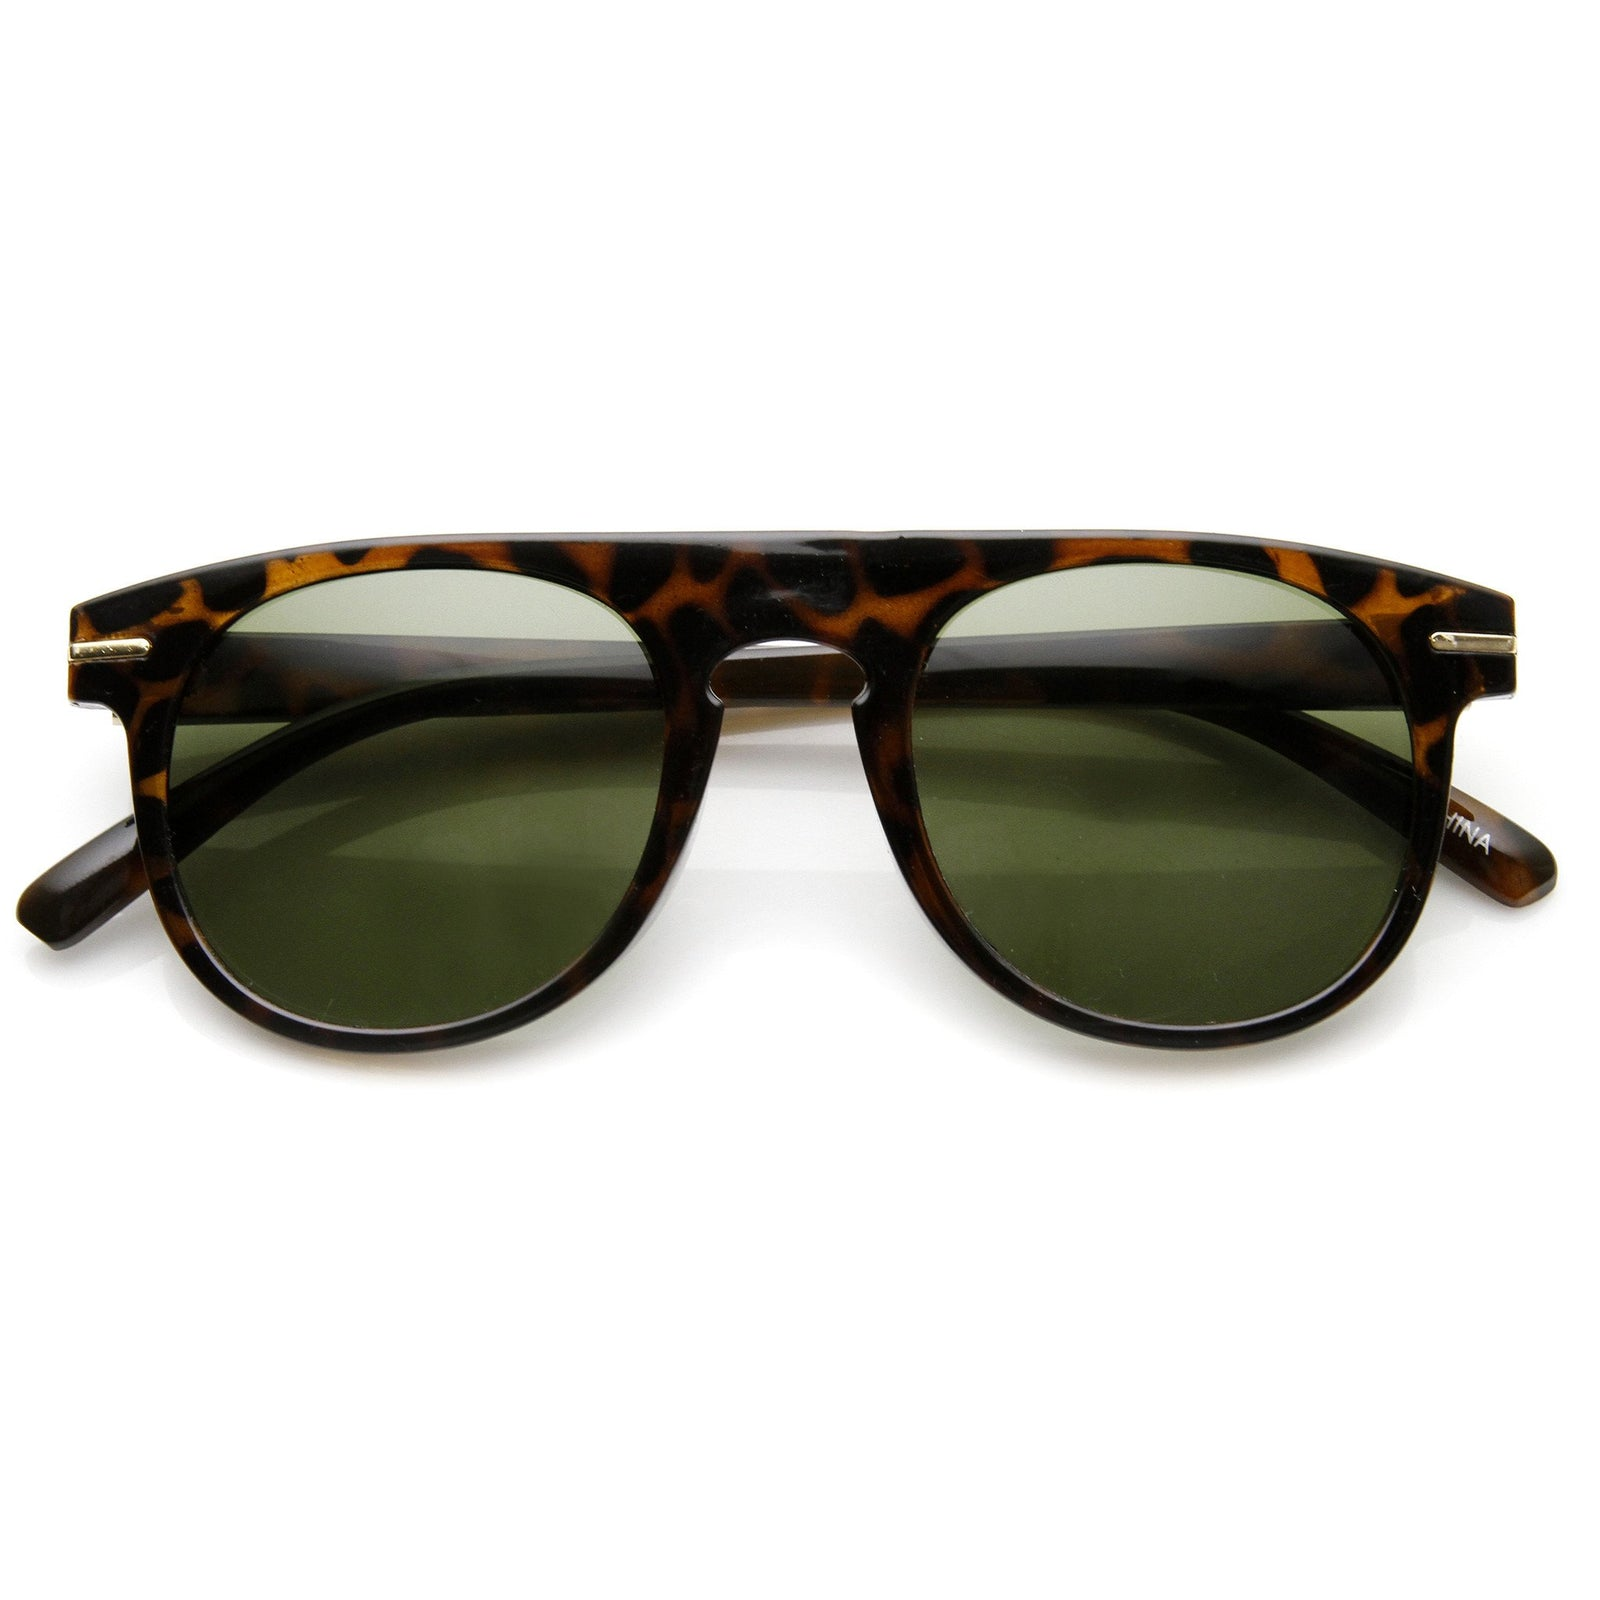 0859aabed Retro Indie Dapper Keyhole P3 Round Flat Top Sunglasses 9302